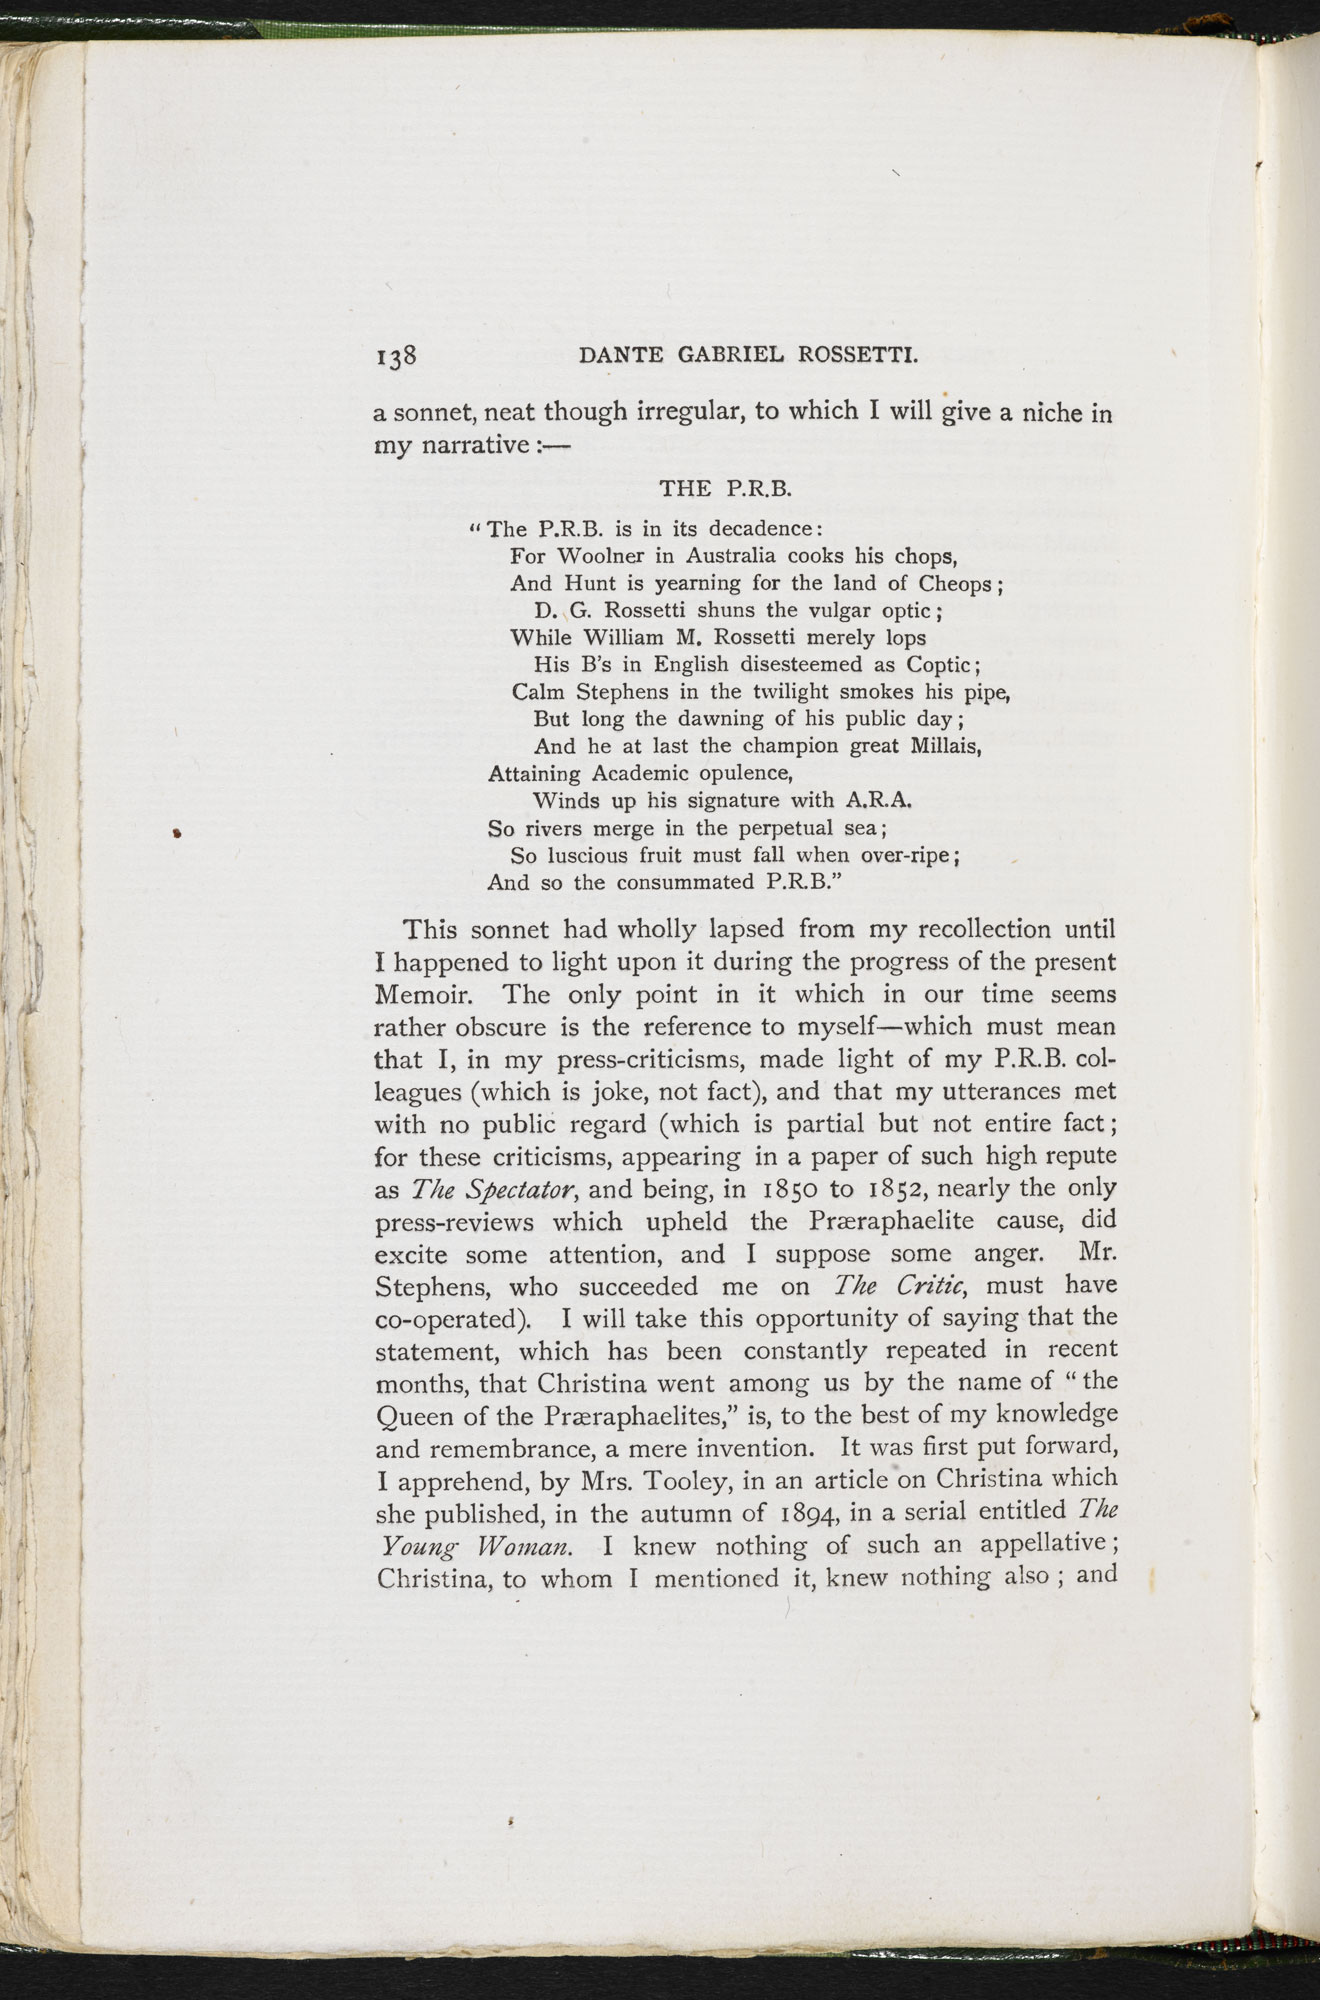 First publication of Christina Rossetti's poem 'The PRB'  [page: 138]